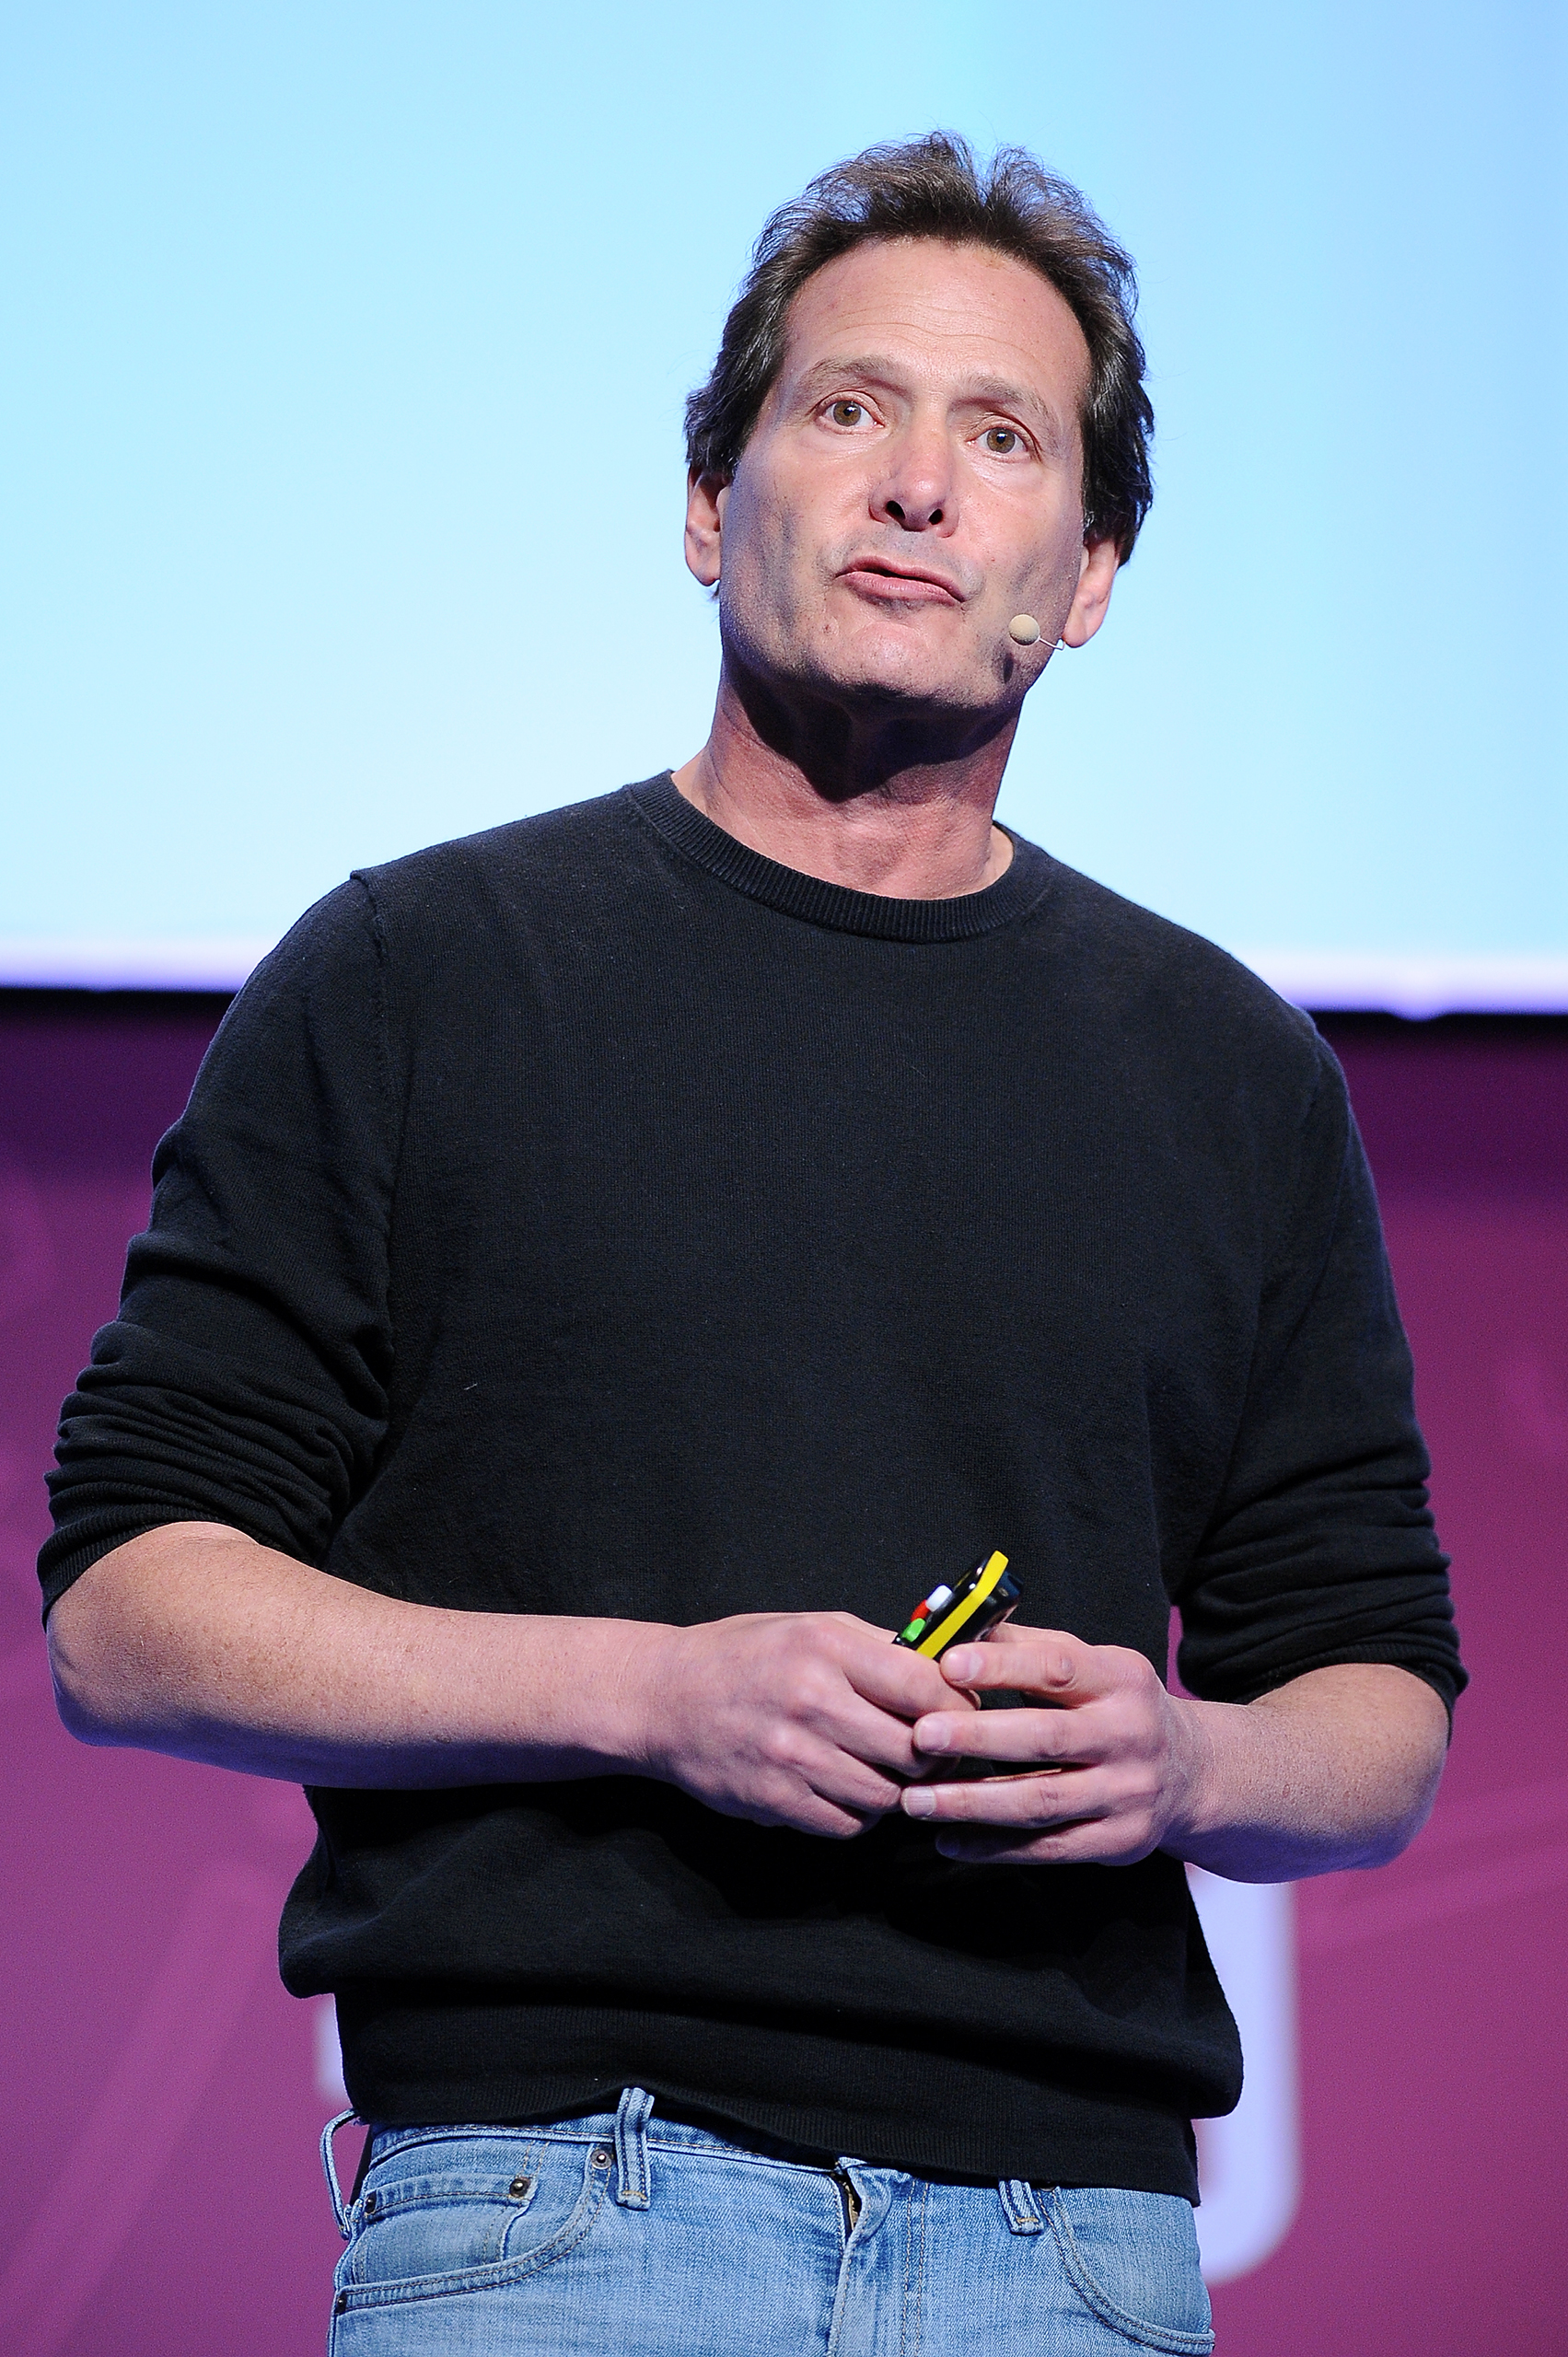 Dan Schulman, president and CEO of Paypal, speaks on the first day of Mobile World Congress 2016 in Barcelona, Spain, on Feb. 22, 2016.